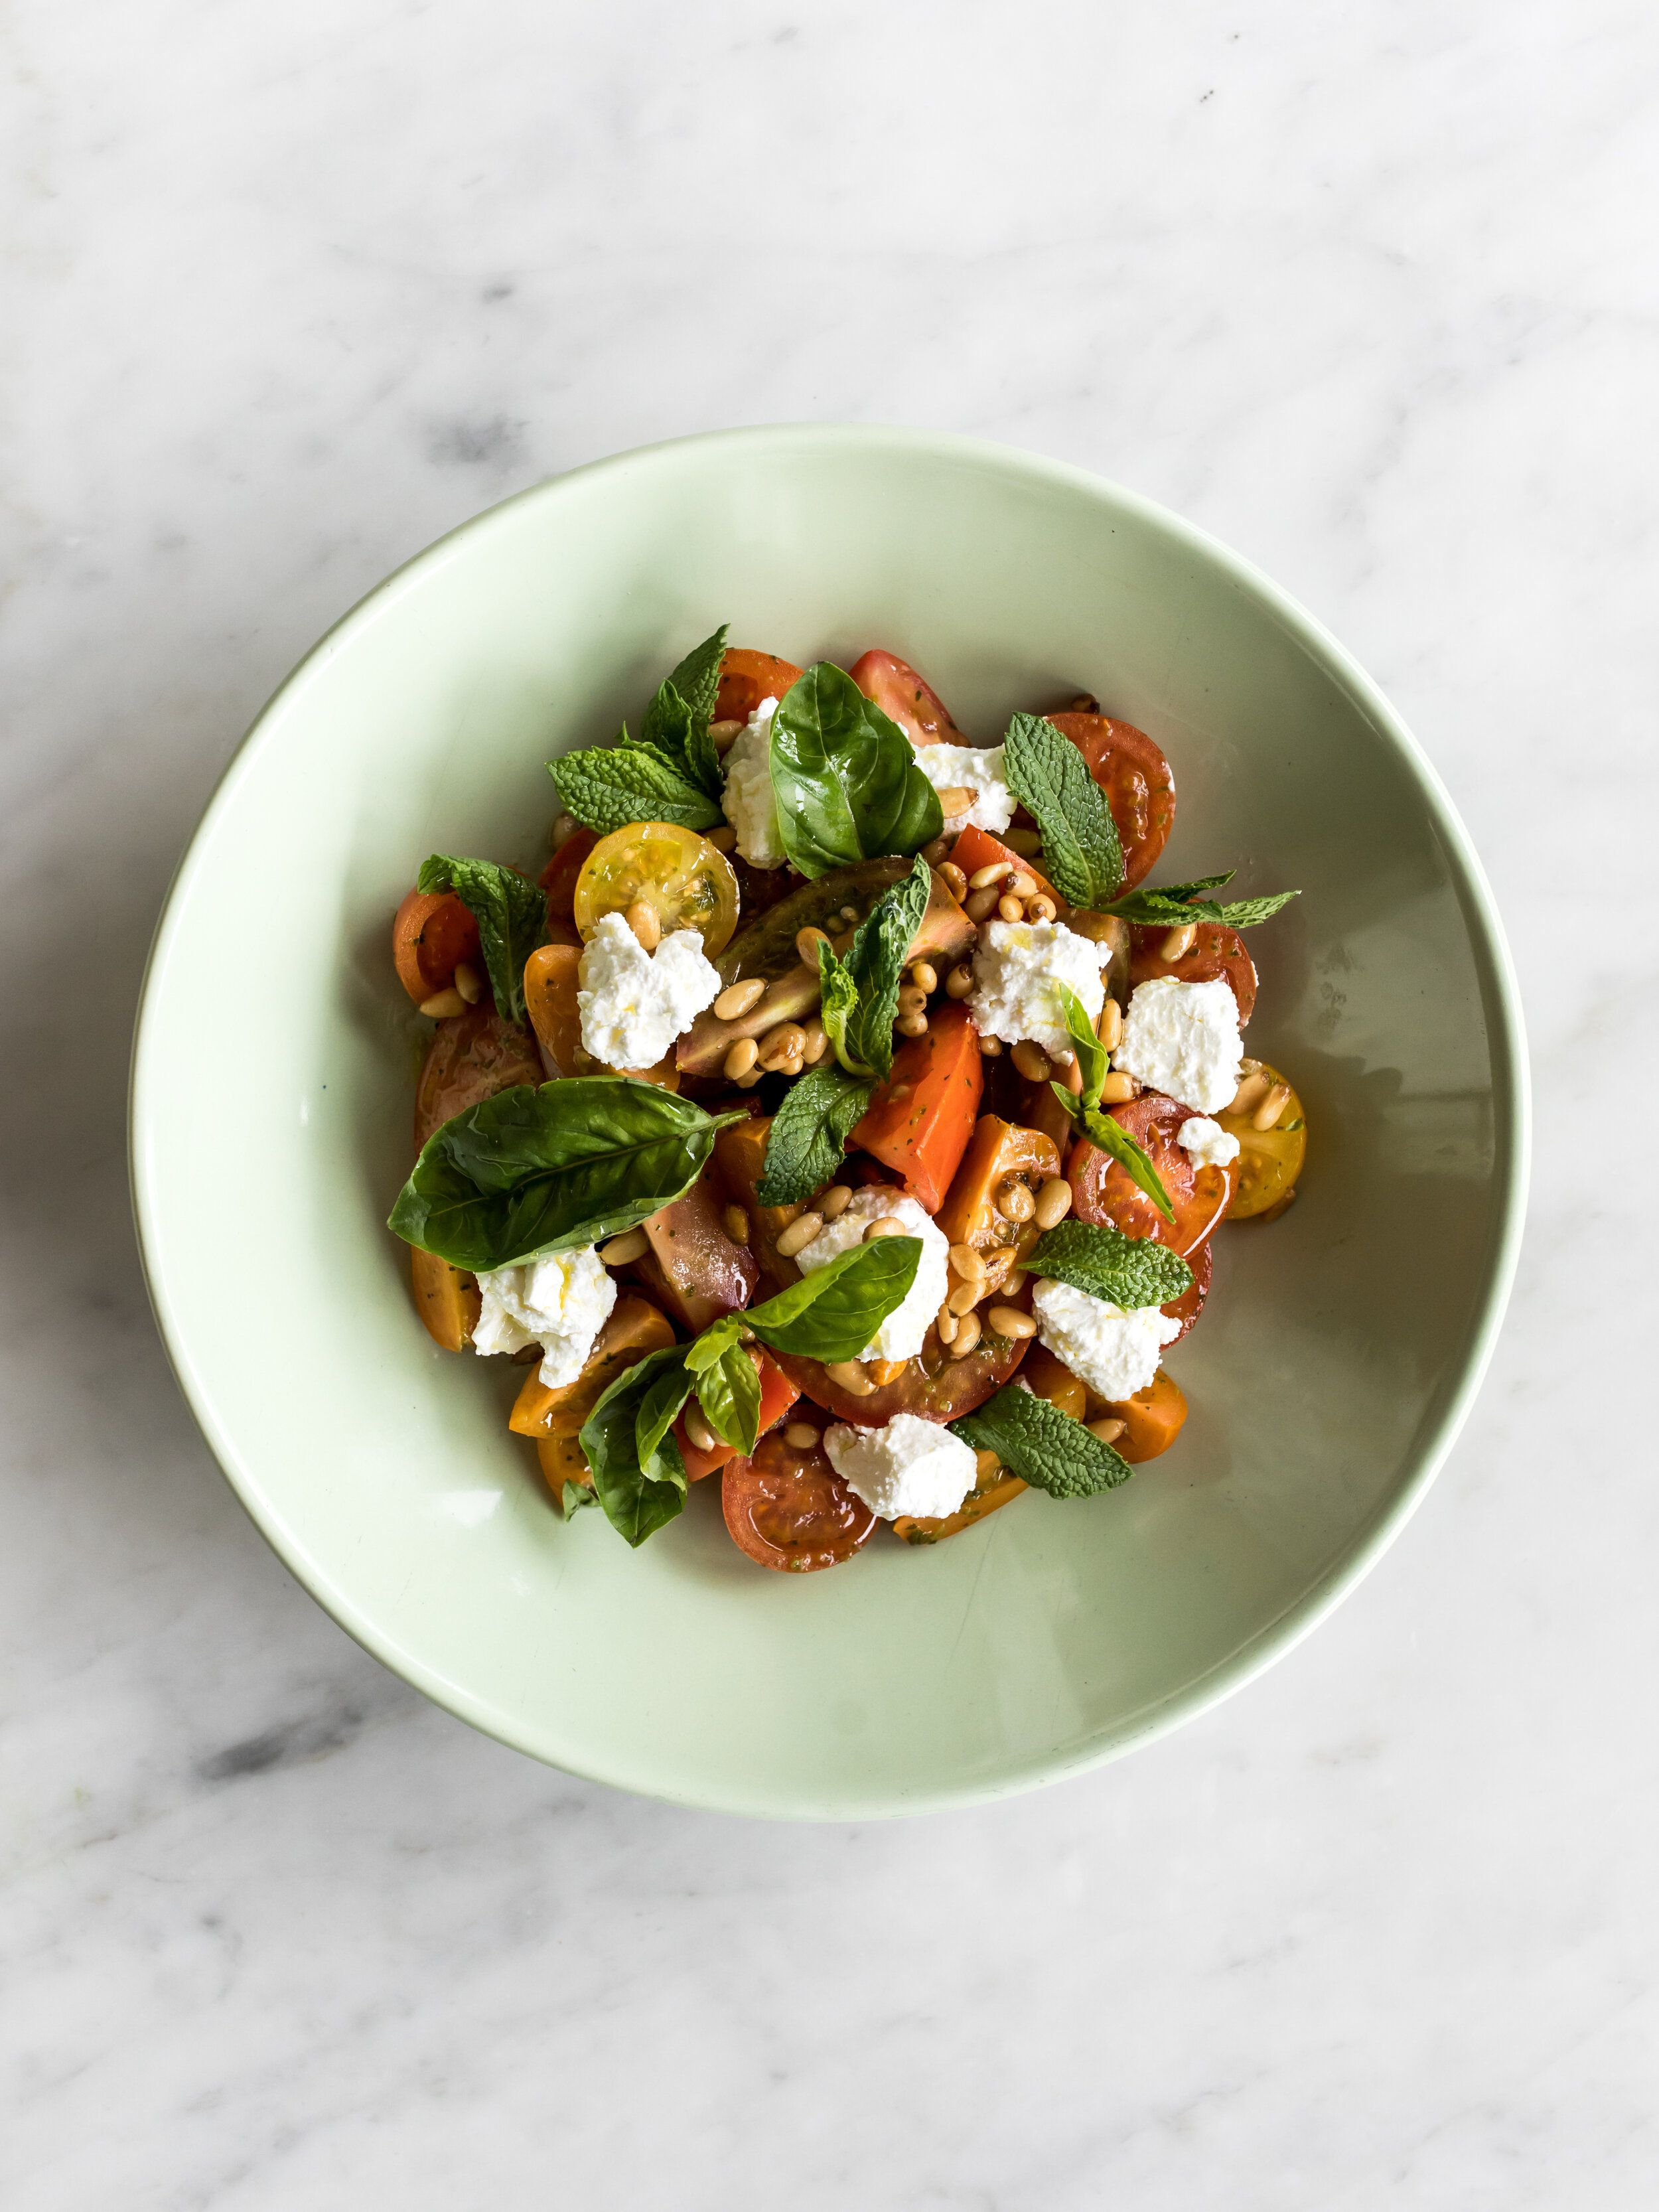 On the menu at The Boathouse Hotel Patonga: Tomato salad with feta, mint + pine nuts.